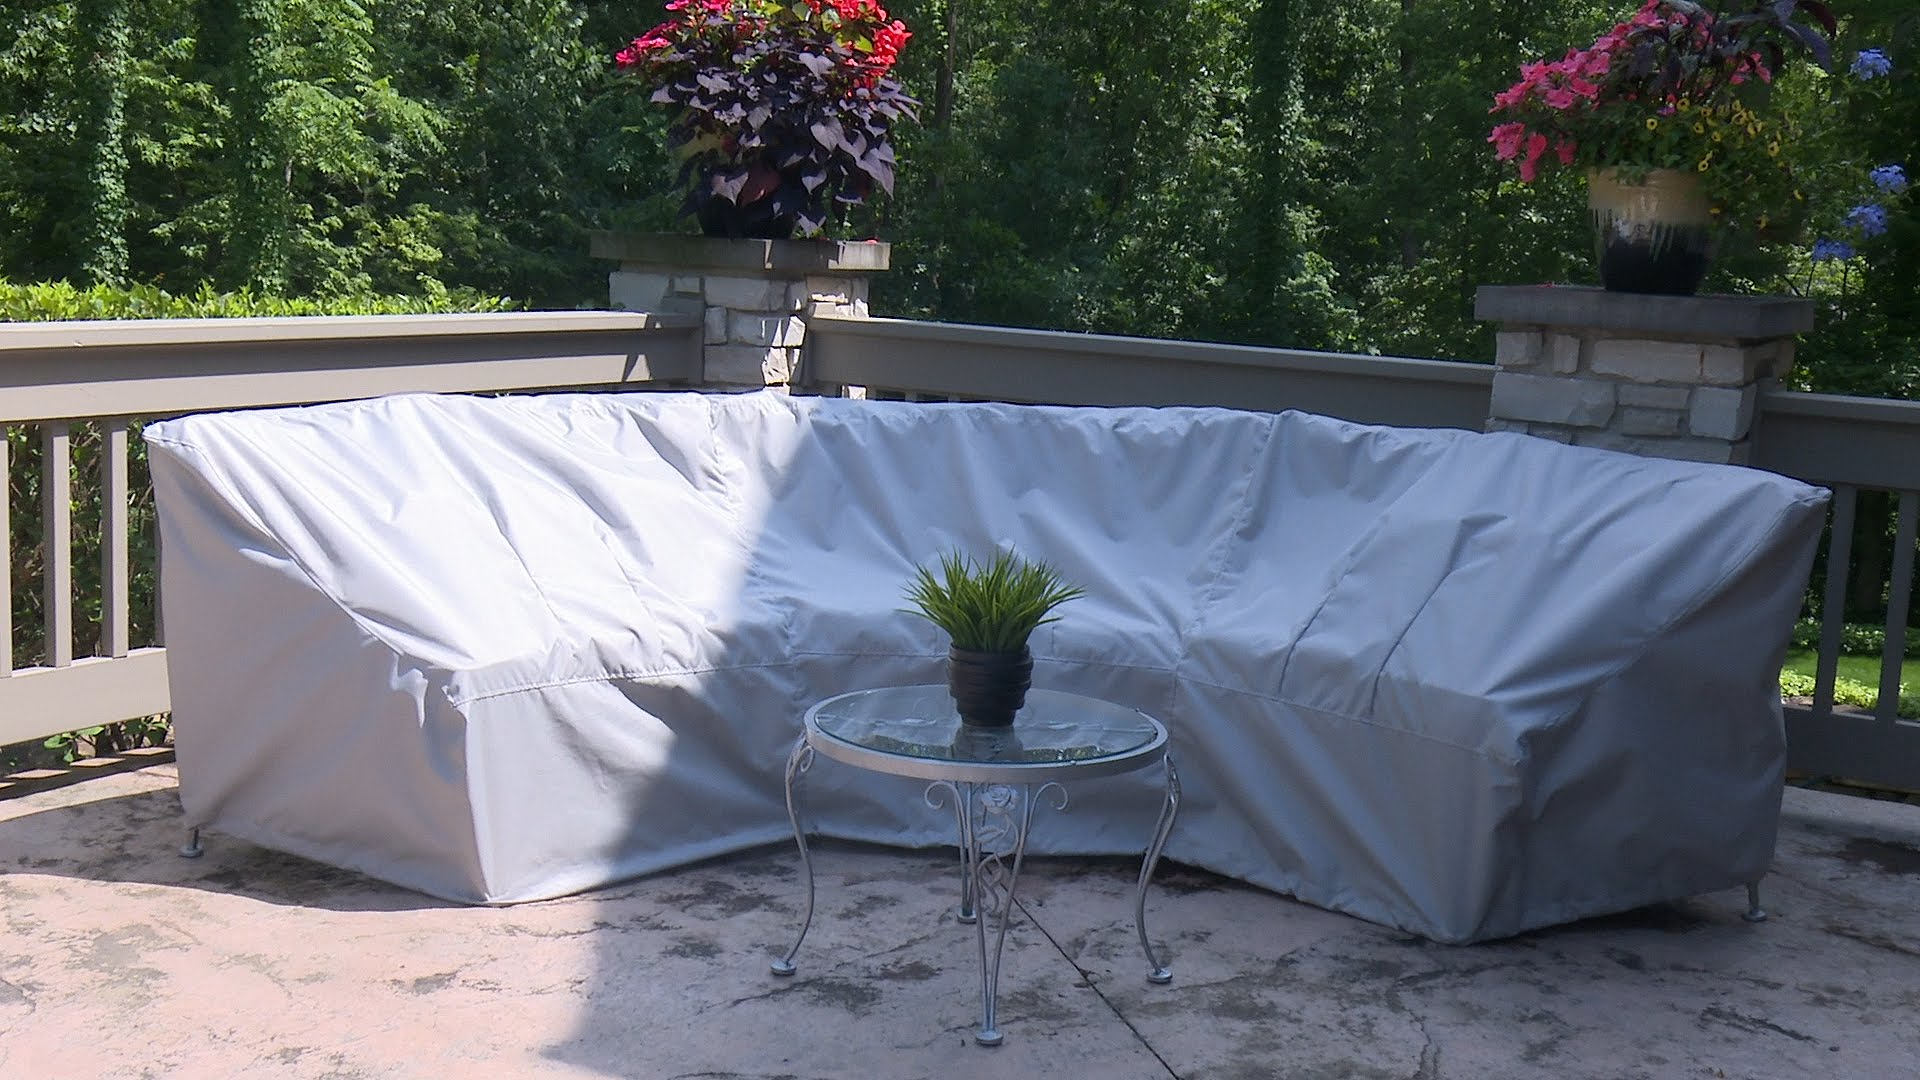 patio furniture covers how to make a cover for a curved patio set - sewing DPJORYJ